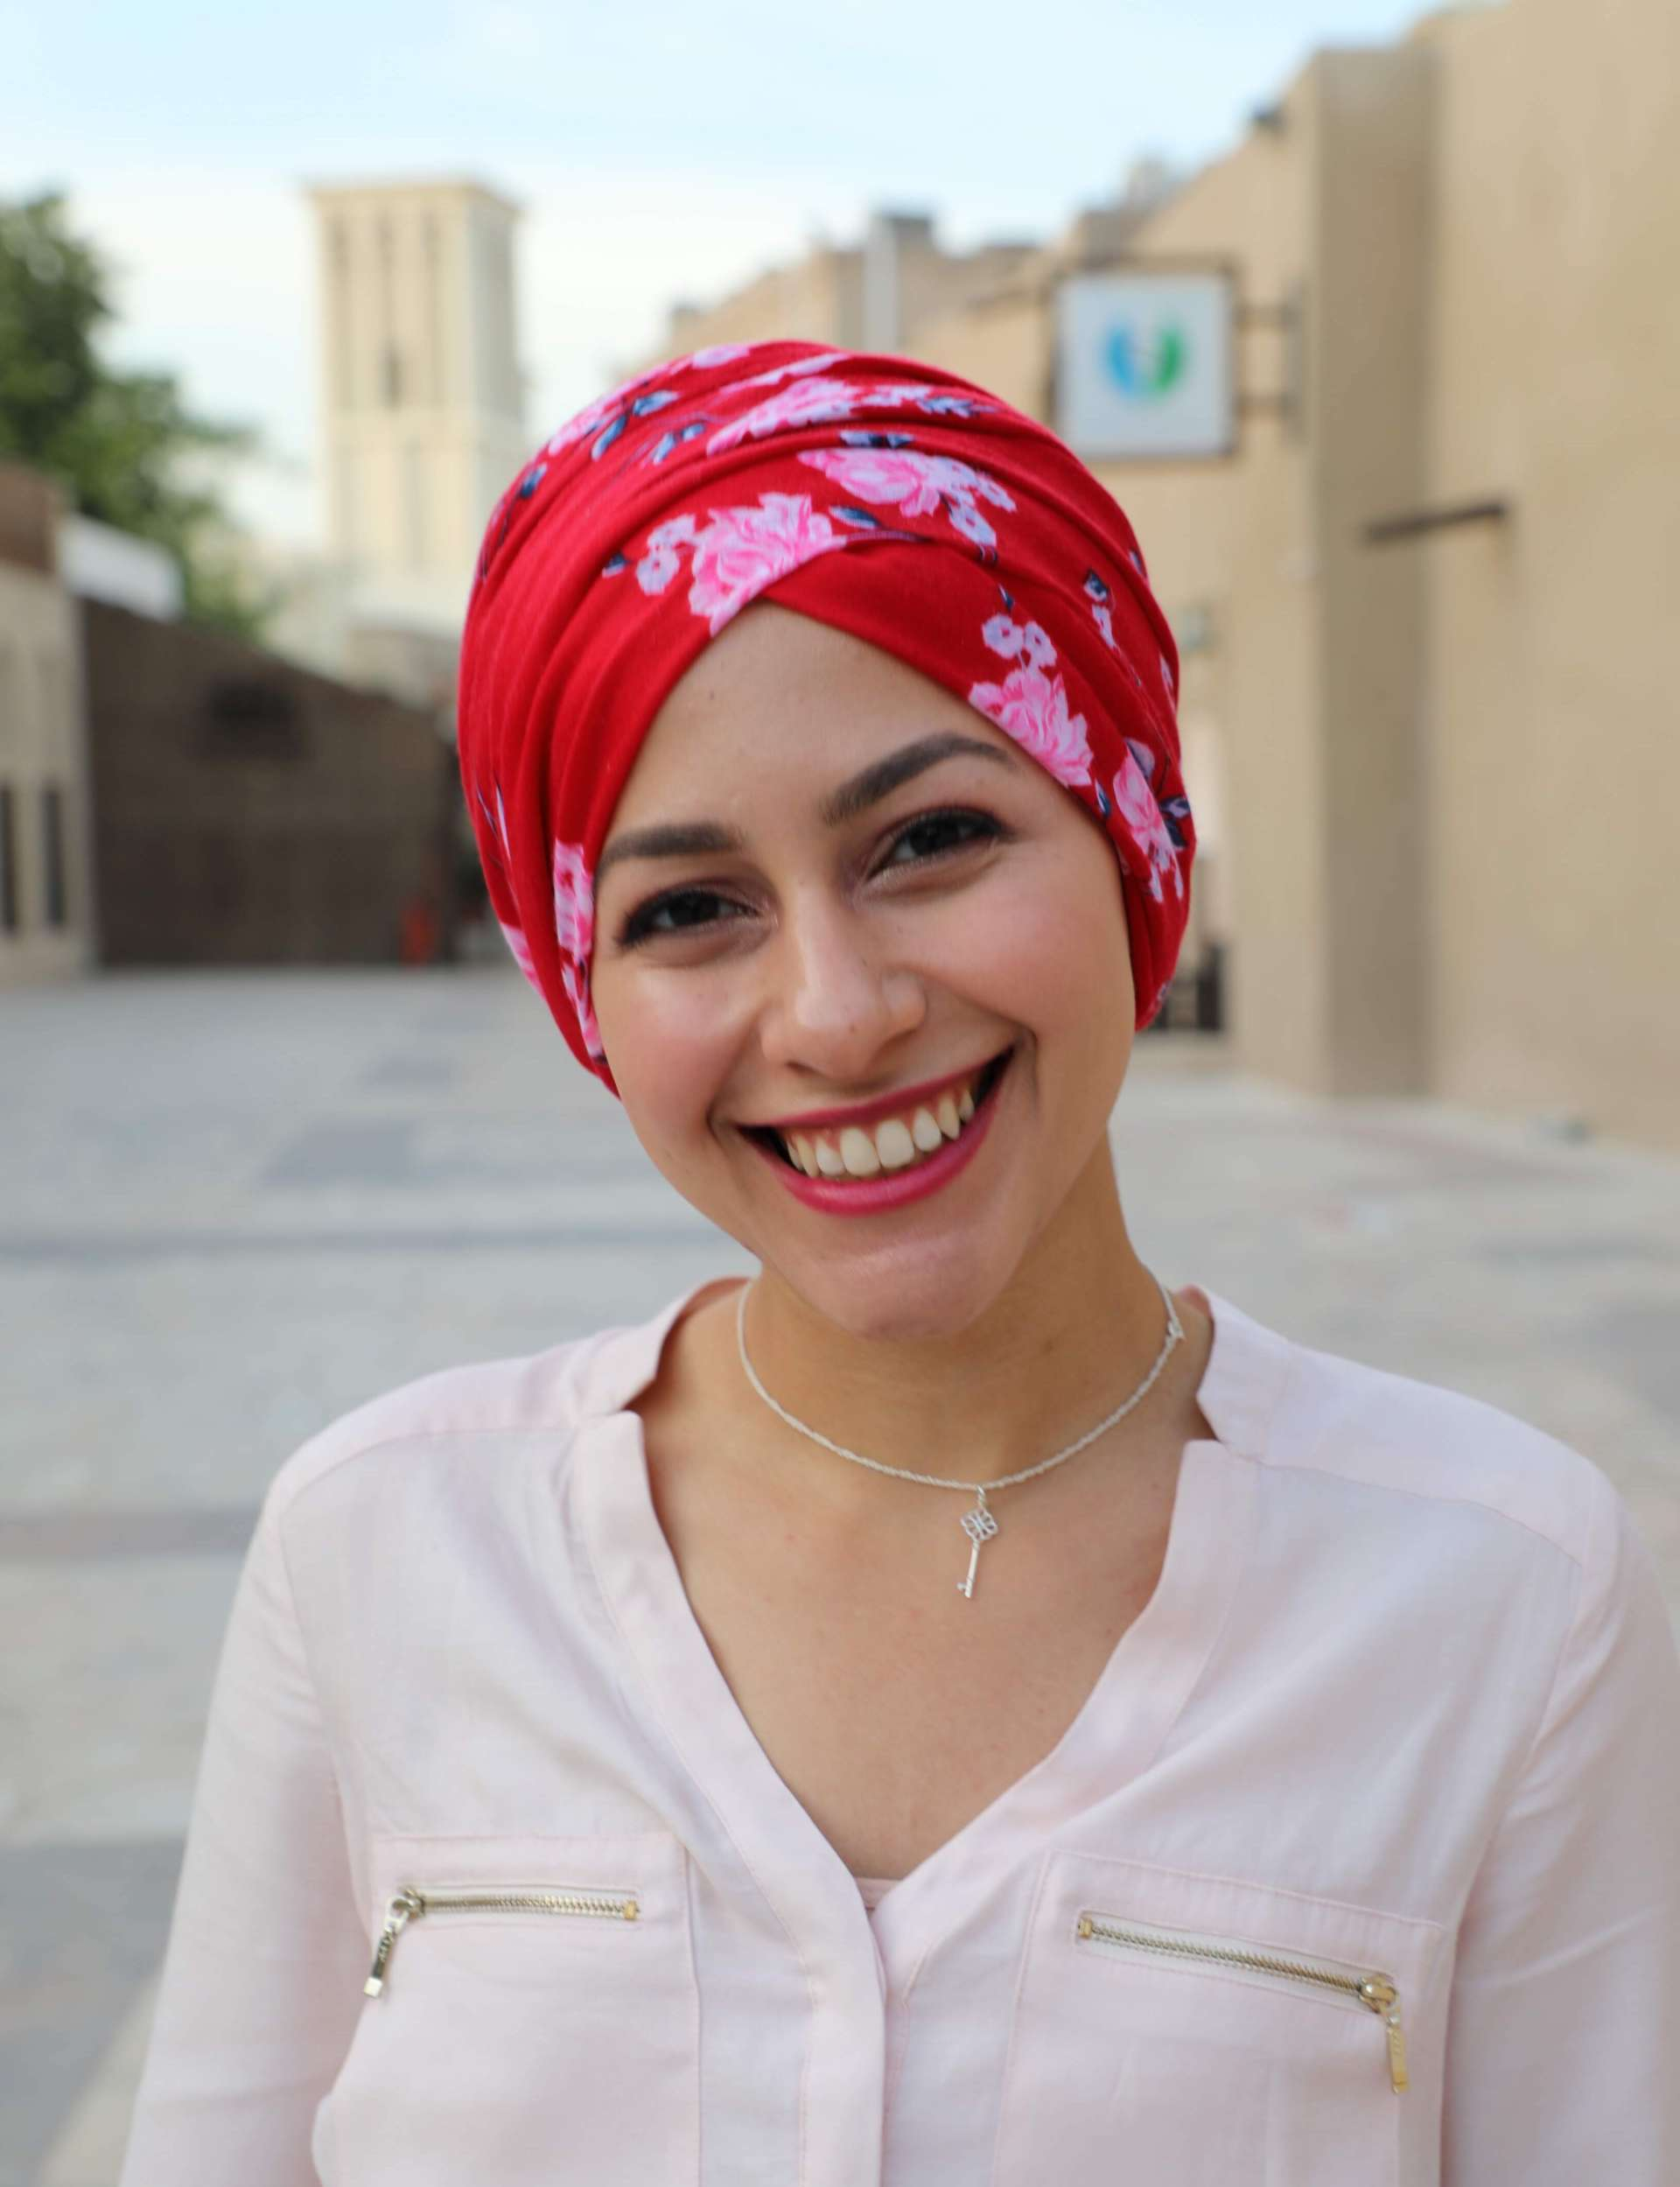 A headshot of Lur Alghurabi wearing a white long sleeved shirt, silver necklace, red lipstick and a red scarf with pink flowers wrapped around her head. She is smiling at the camera and the background is of a blurry outside setting.